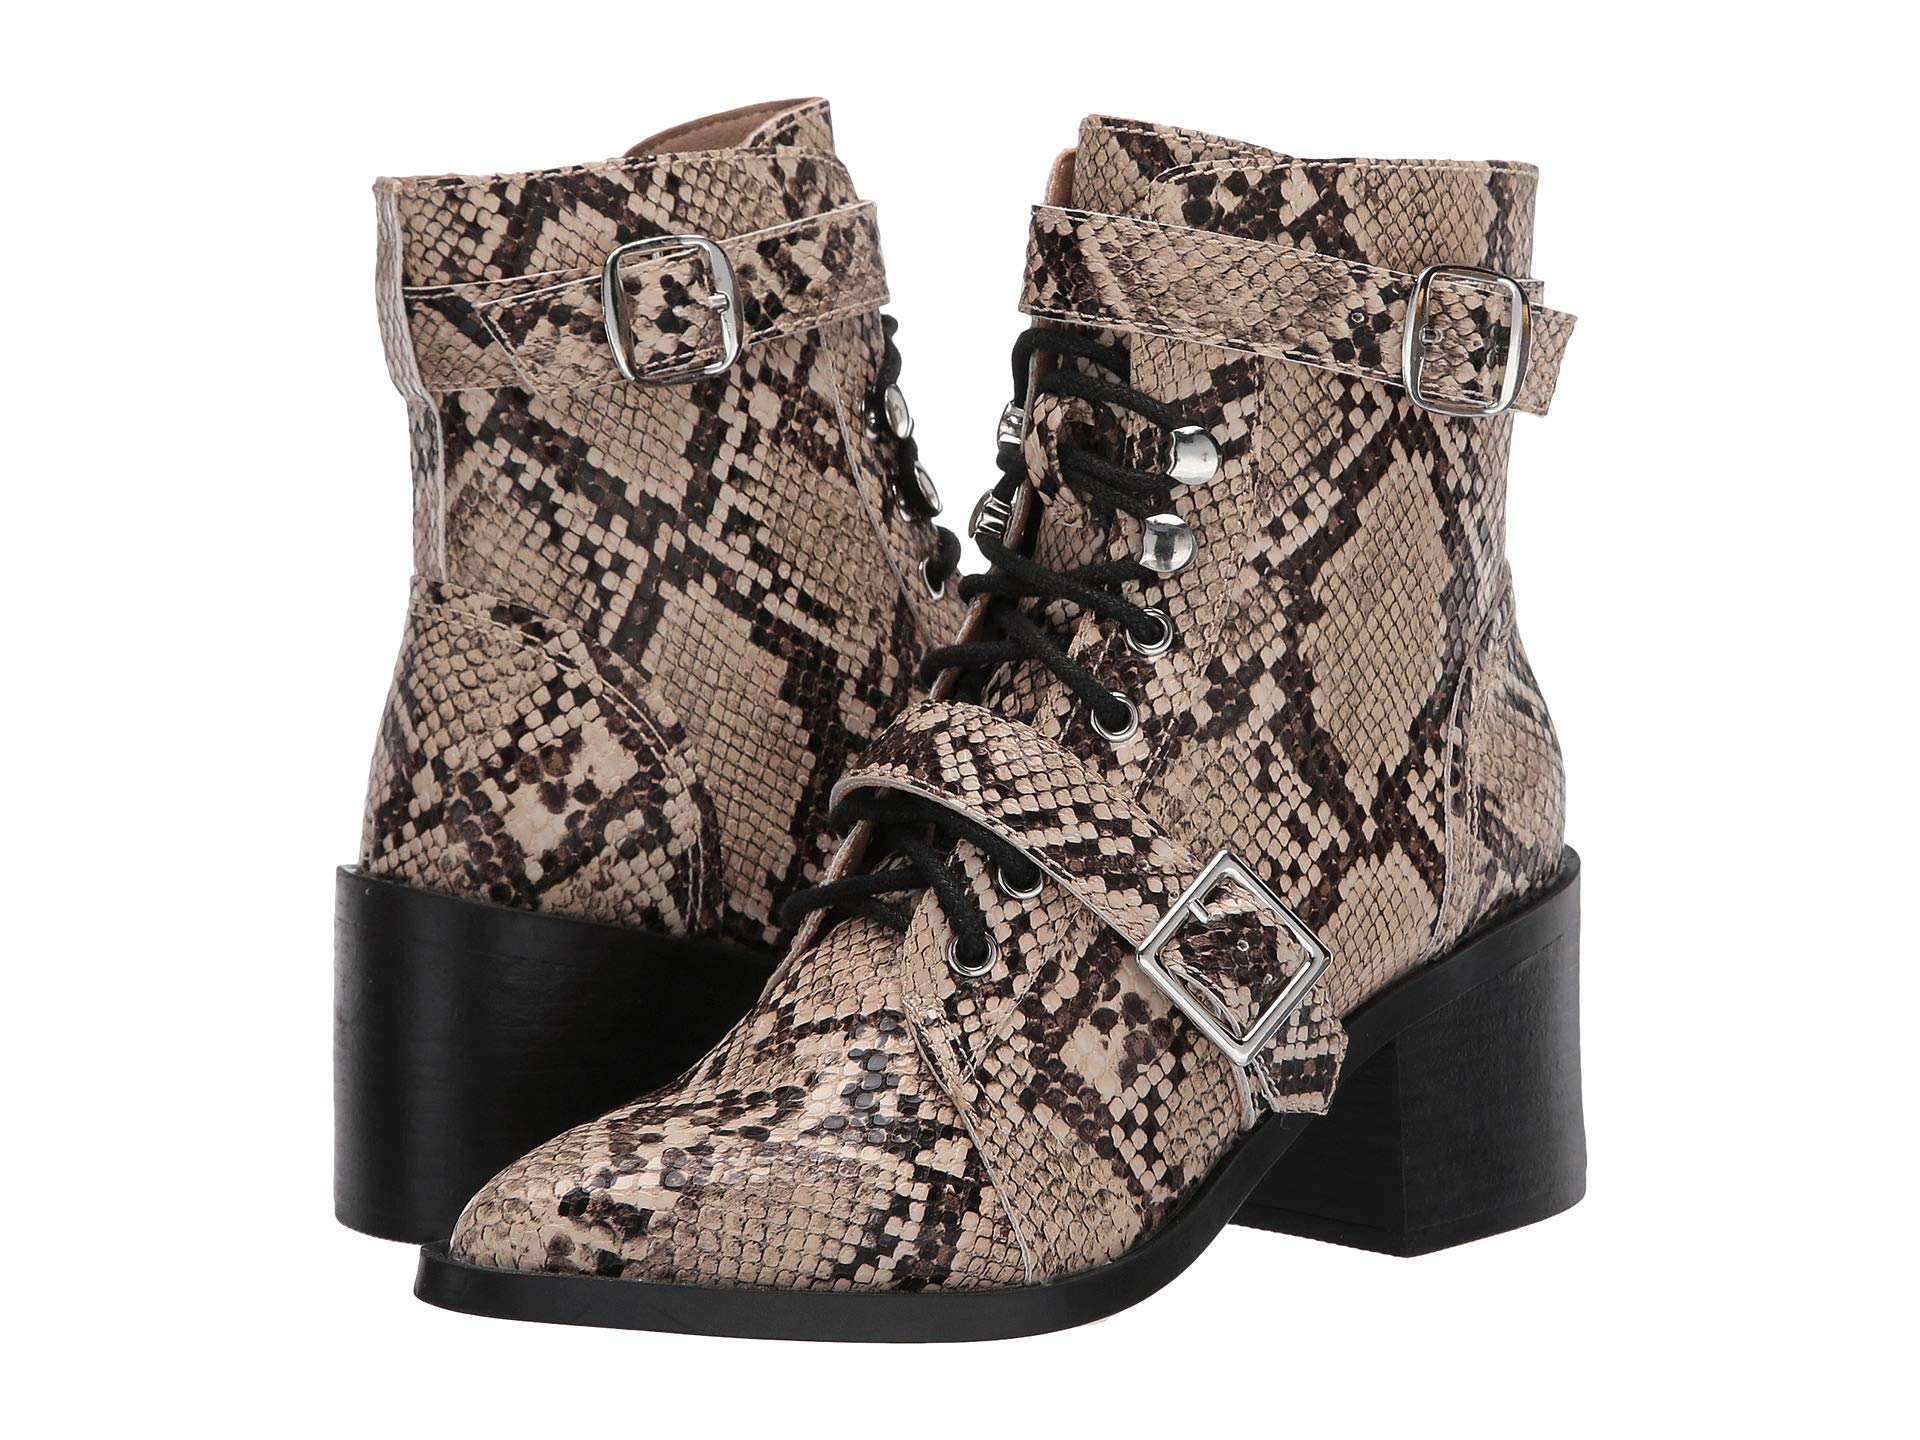 Steve Madden Steve Madden Astrid Lace-Up Boot